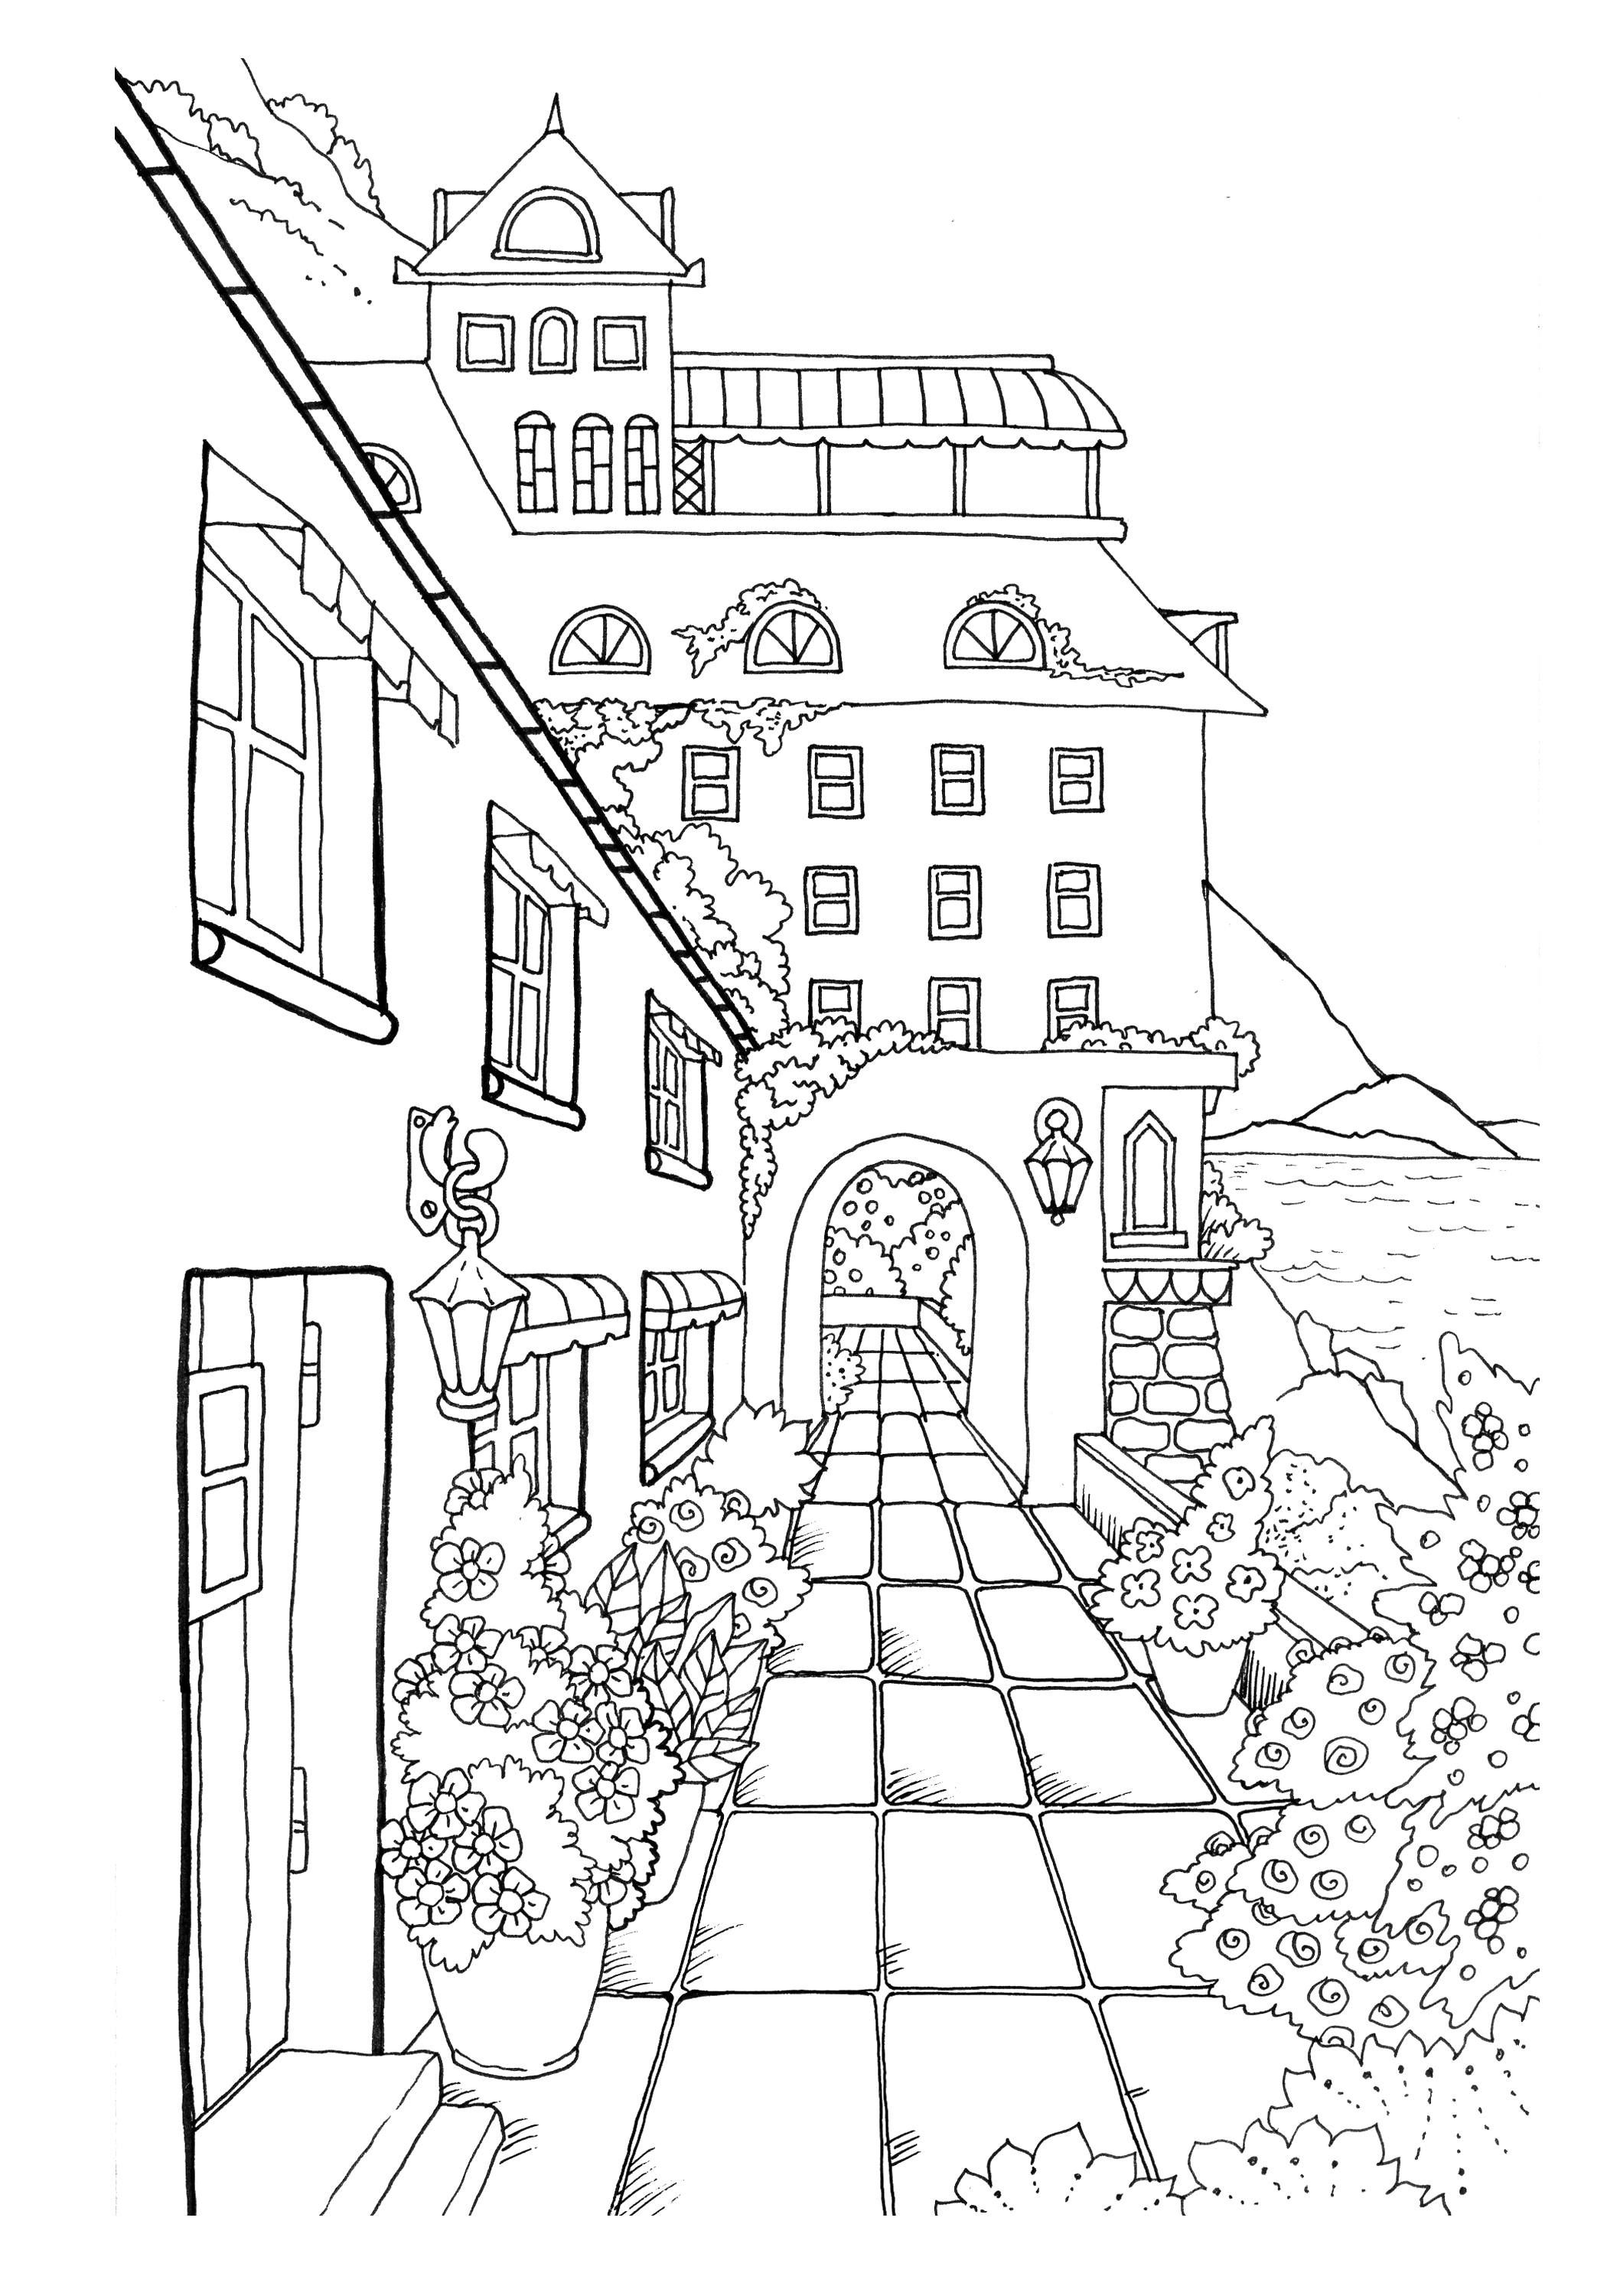 Nice little town adult coloring book digital pages stress